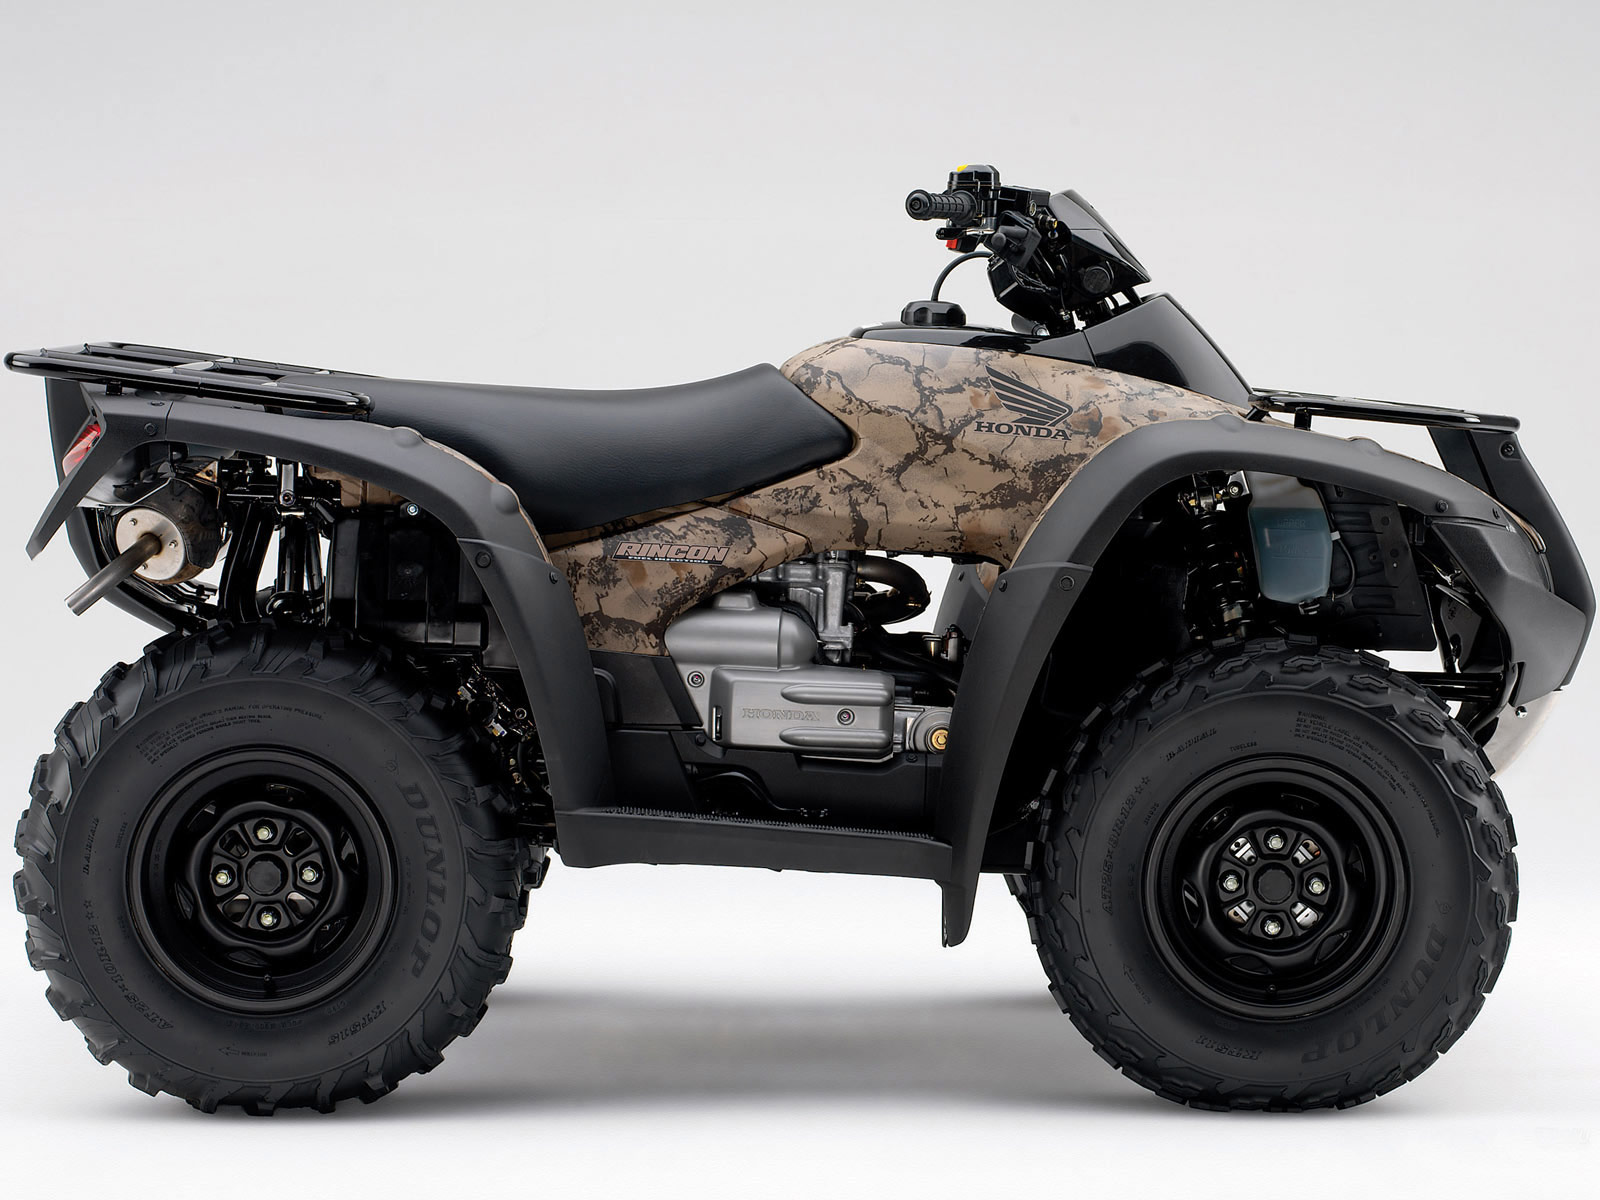 2006 Honda Fourtrax Rincon Atv Wallpapers